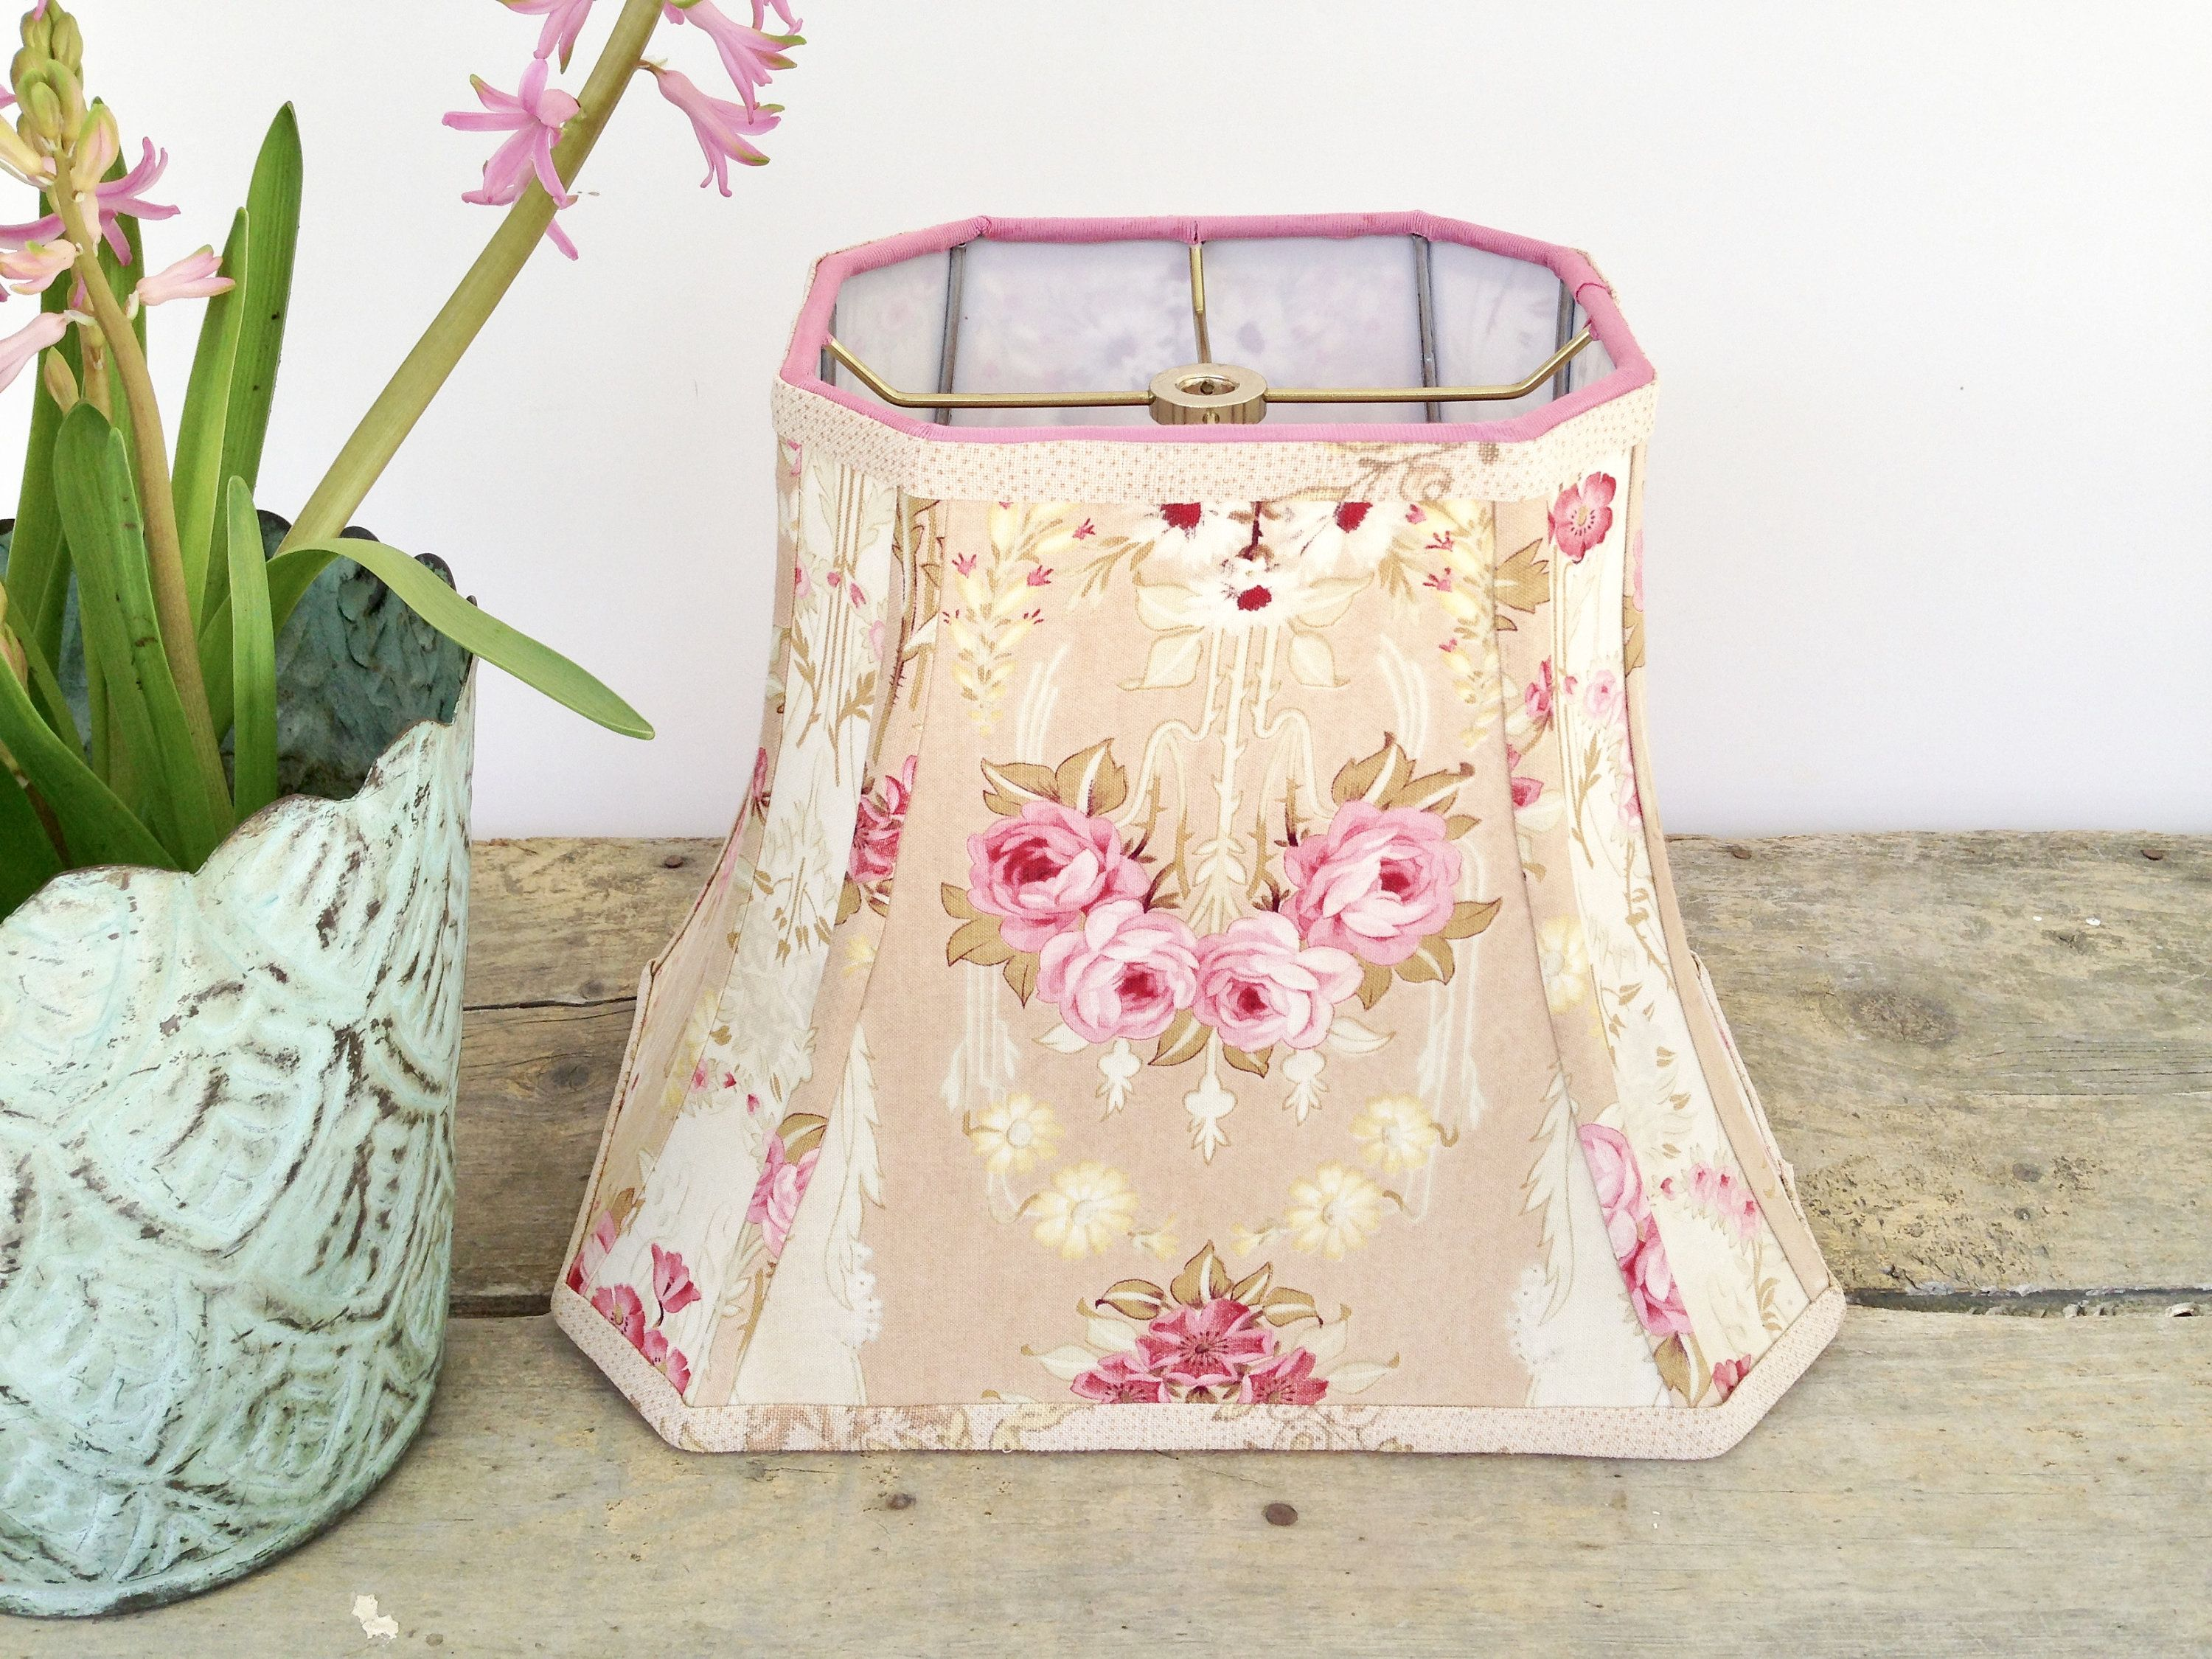 Cottage rose lamp shade rectangle bell lampshade 7t x 12b x 95h cottage rose lamp shade rectangle bell lampshade x x vintage french fabric pink flowers only one pretty by lampshadelady on etsy mightylinksfo